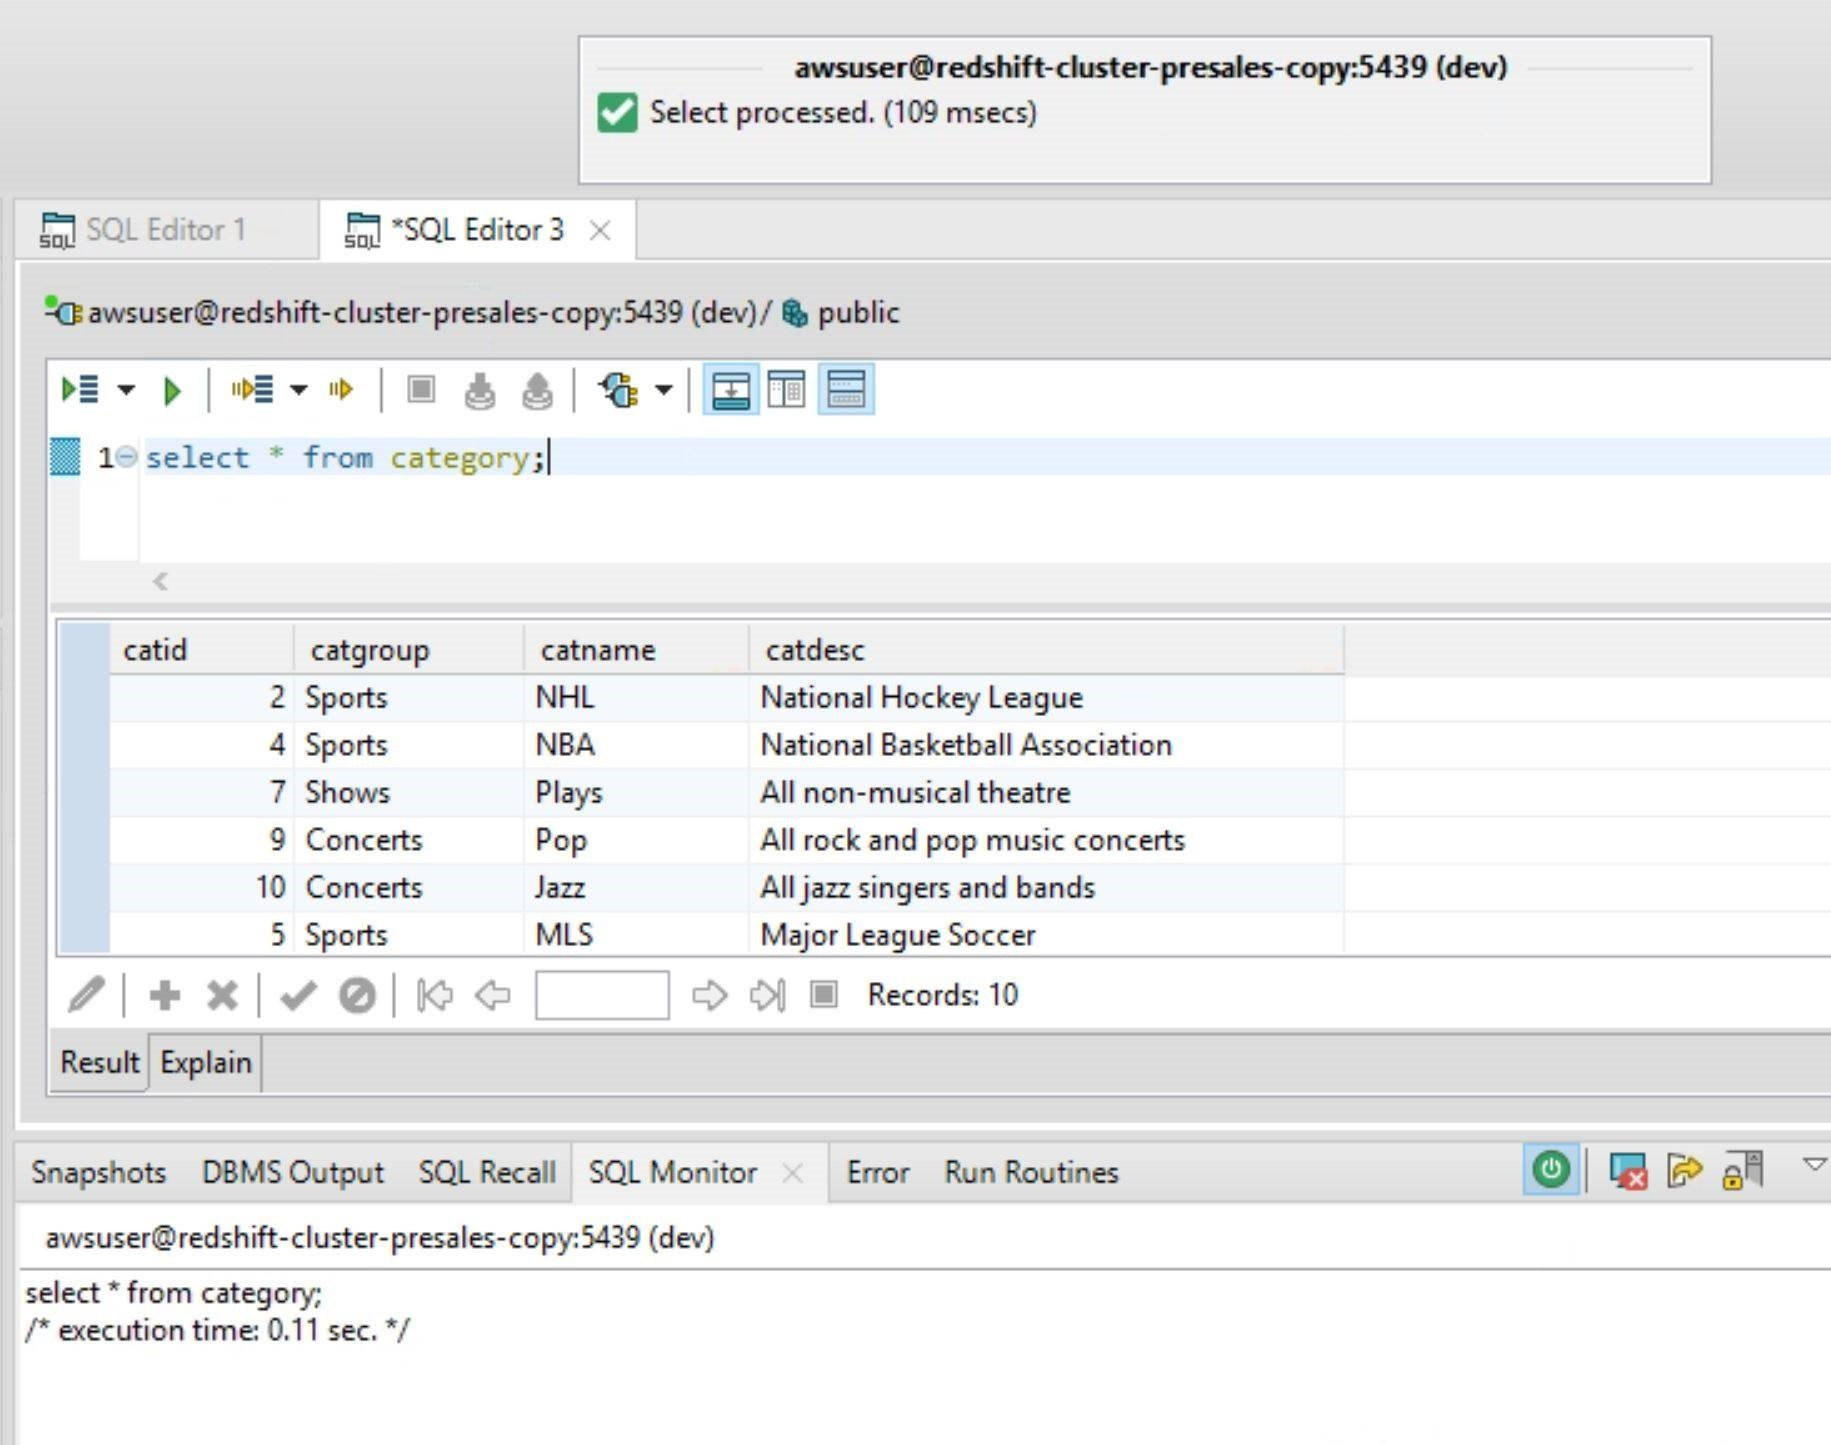 Screen capture showing the results of a SQL statement coded and then executed within the Toad Edge client application, accessing data from Redshift.